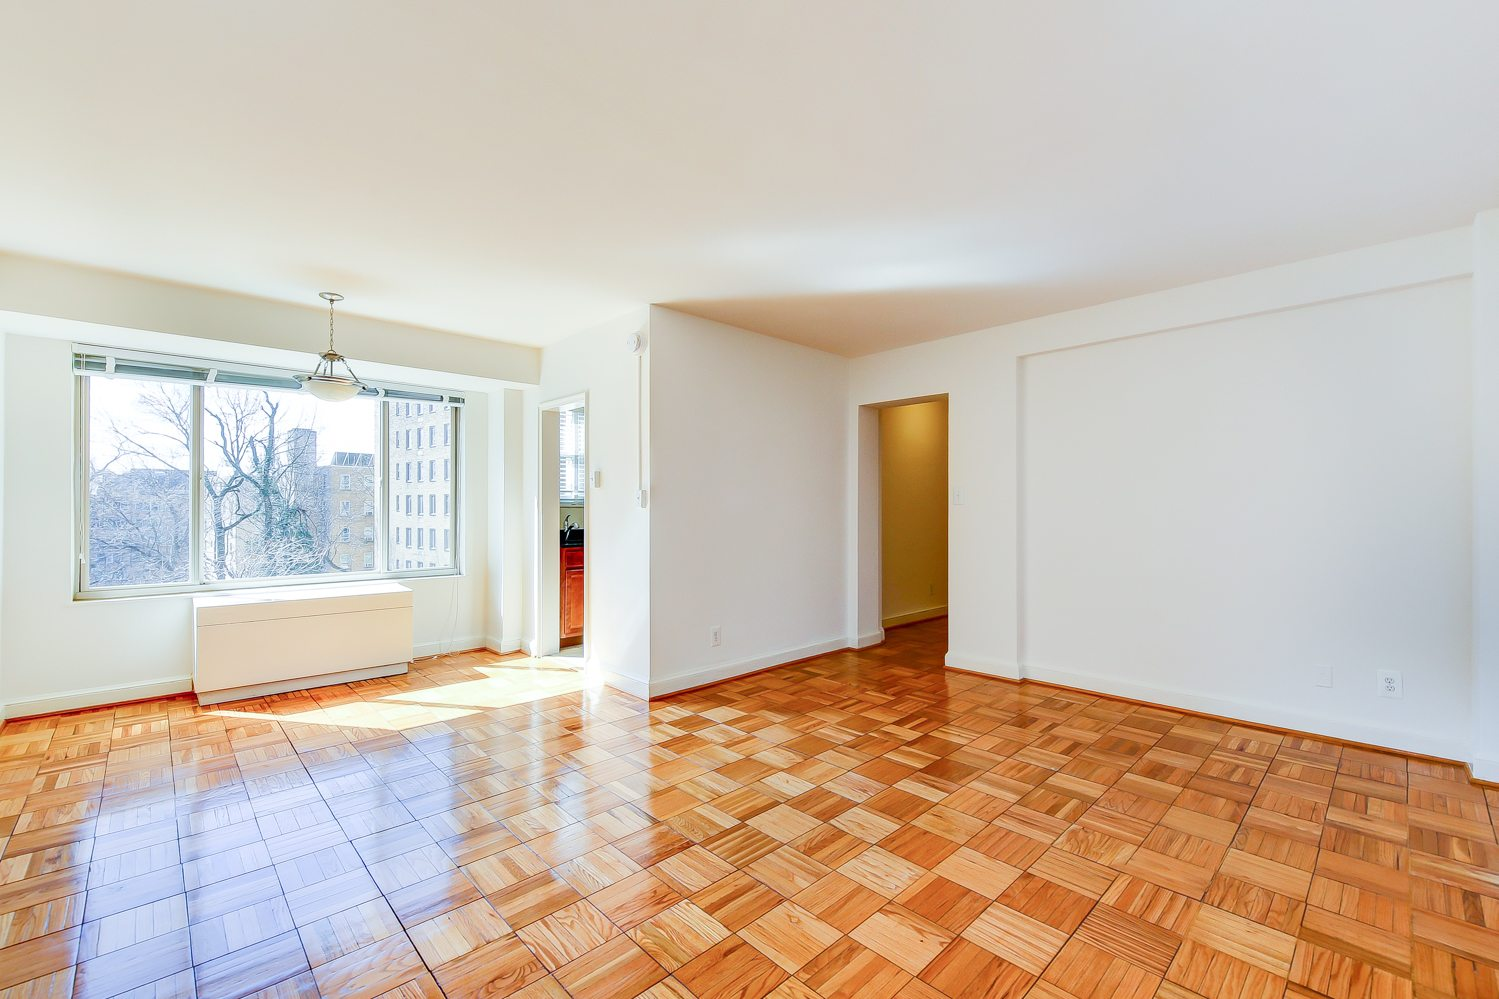 2800-Woodley-Road-Living-Room-View-From-Front-Door-Washington-DC ...